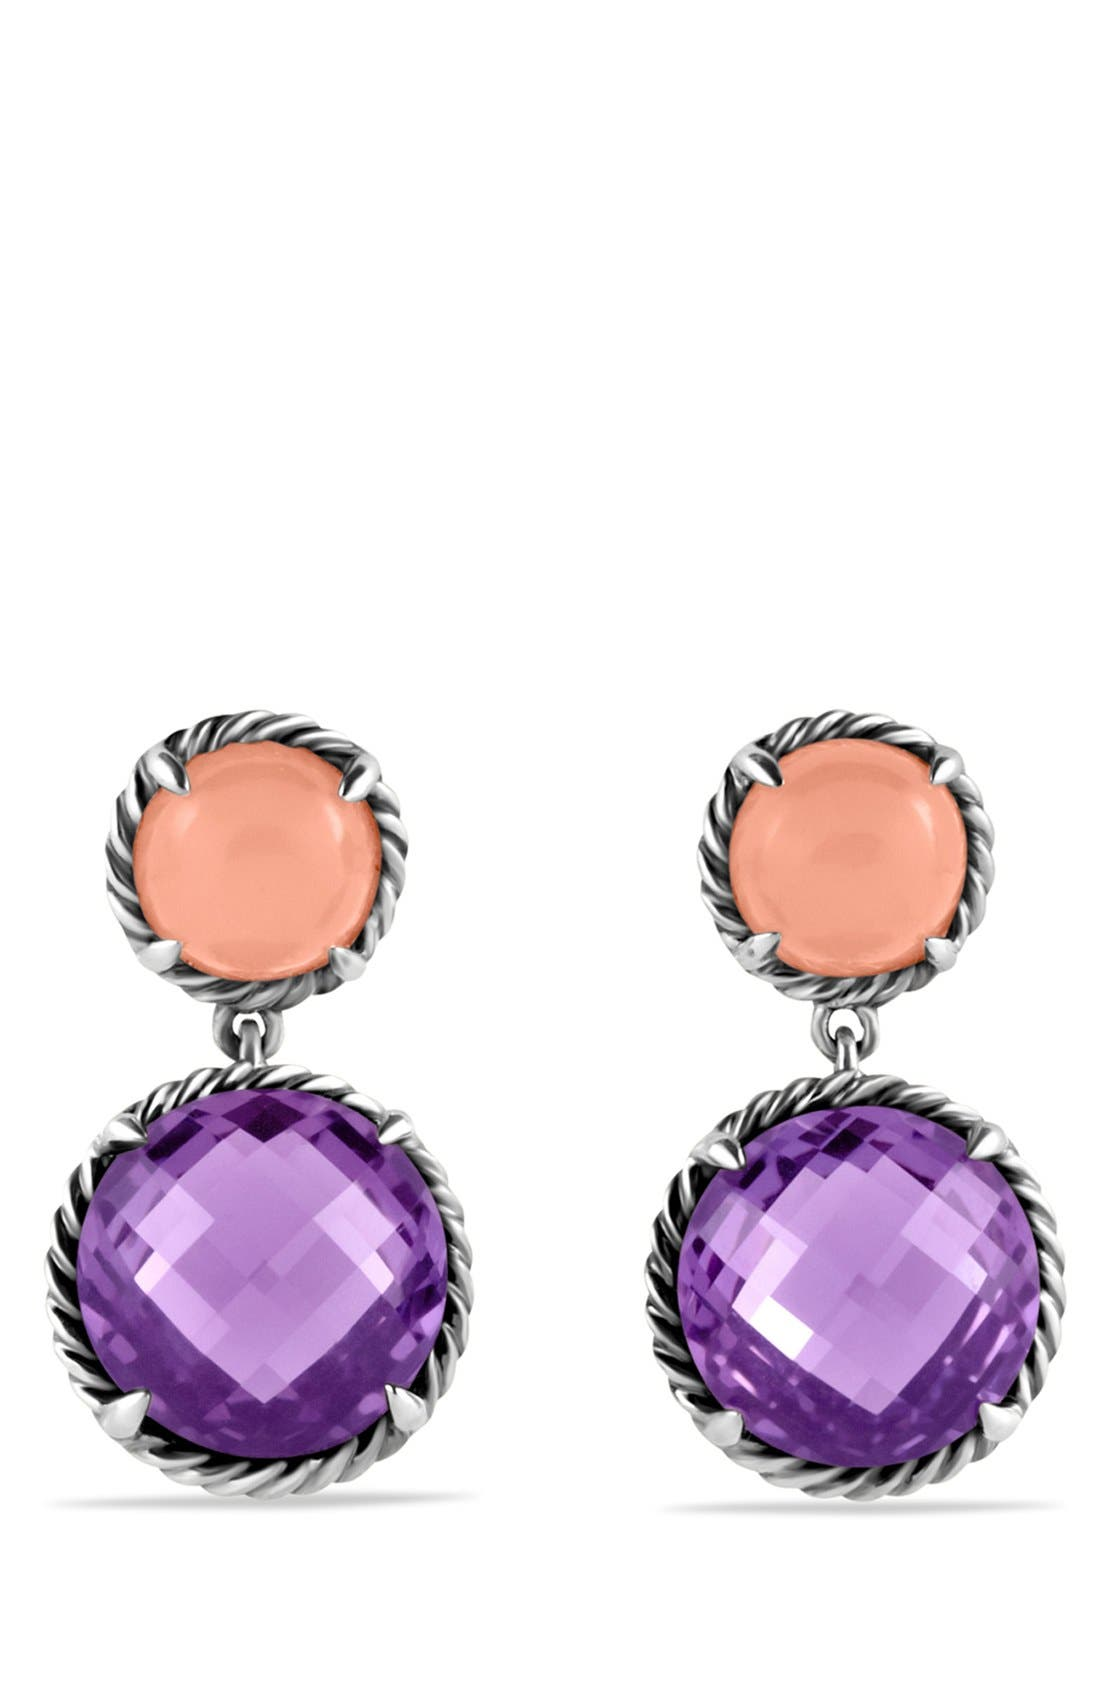 Alternate Image 1 Selected - David Yurman 'Châtelaine' Double Drop Earrings with Amethyst and Guava Quartz